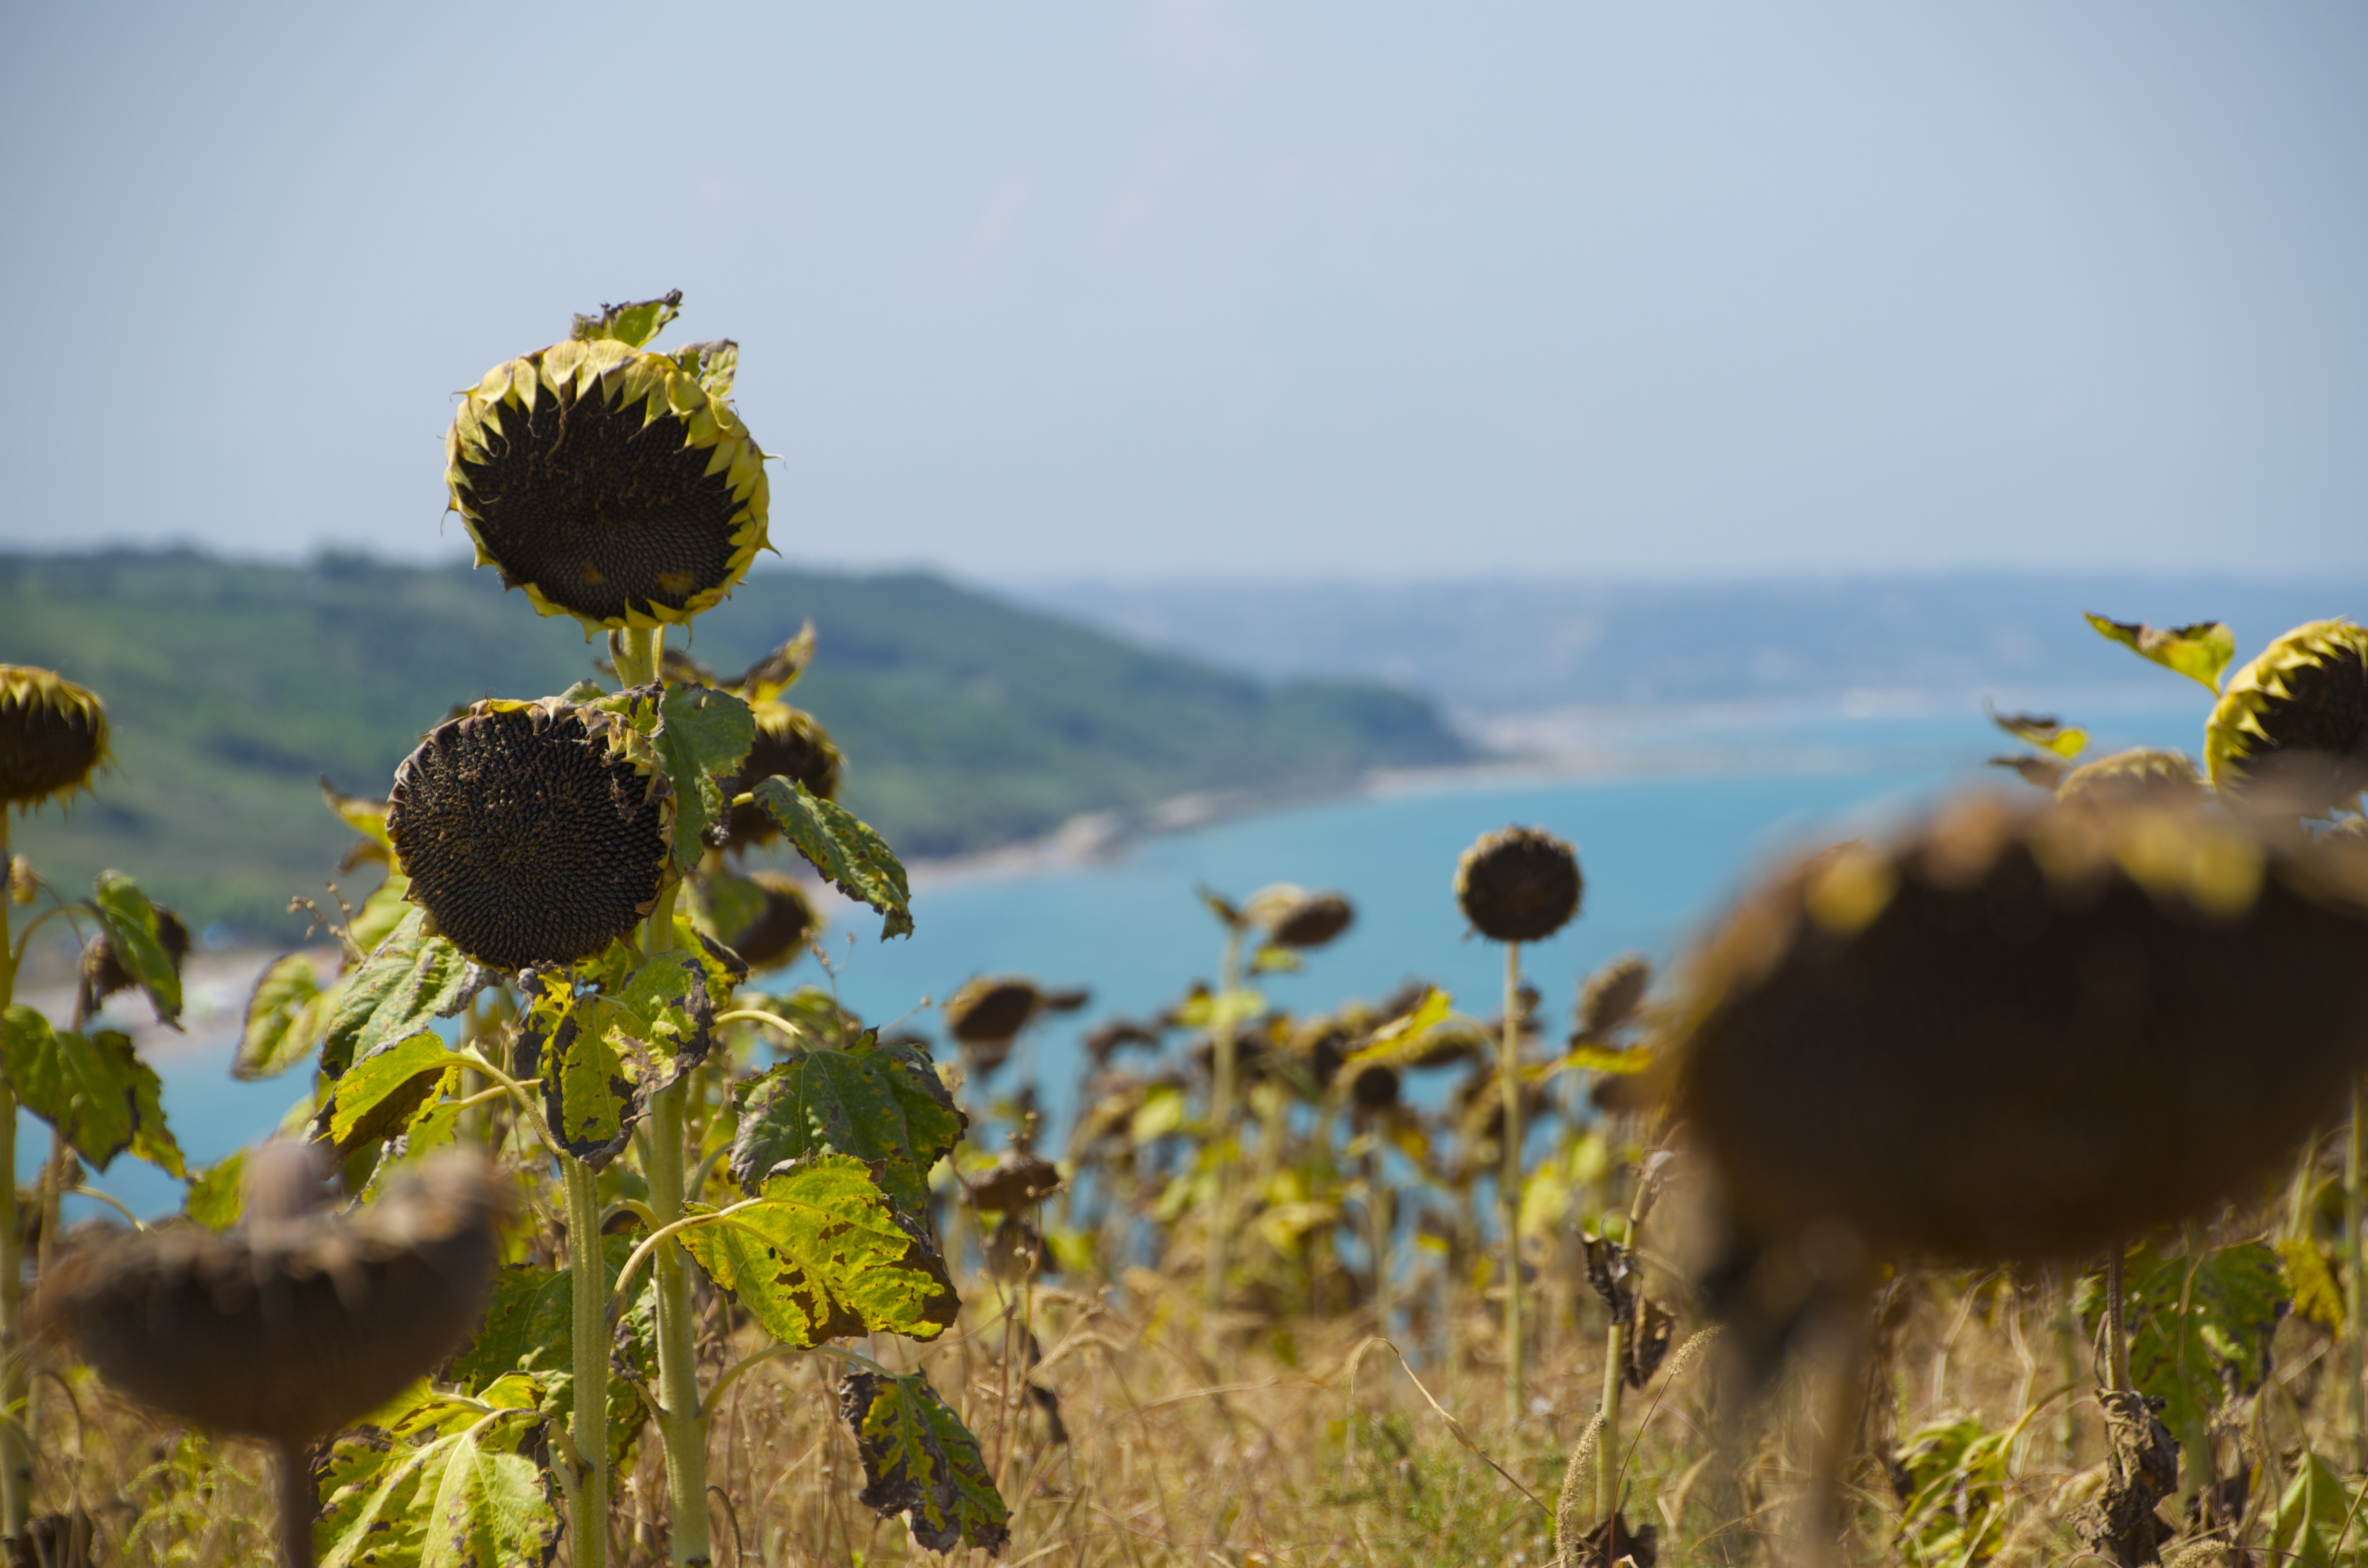 Italy on the road: driving between Marche and Puglia